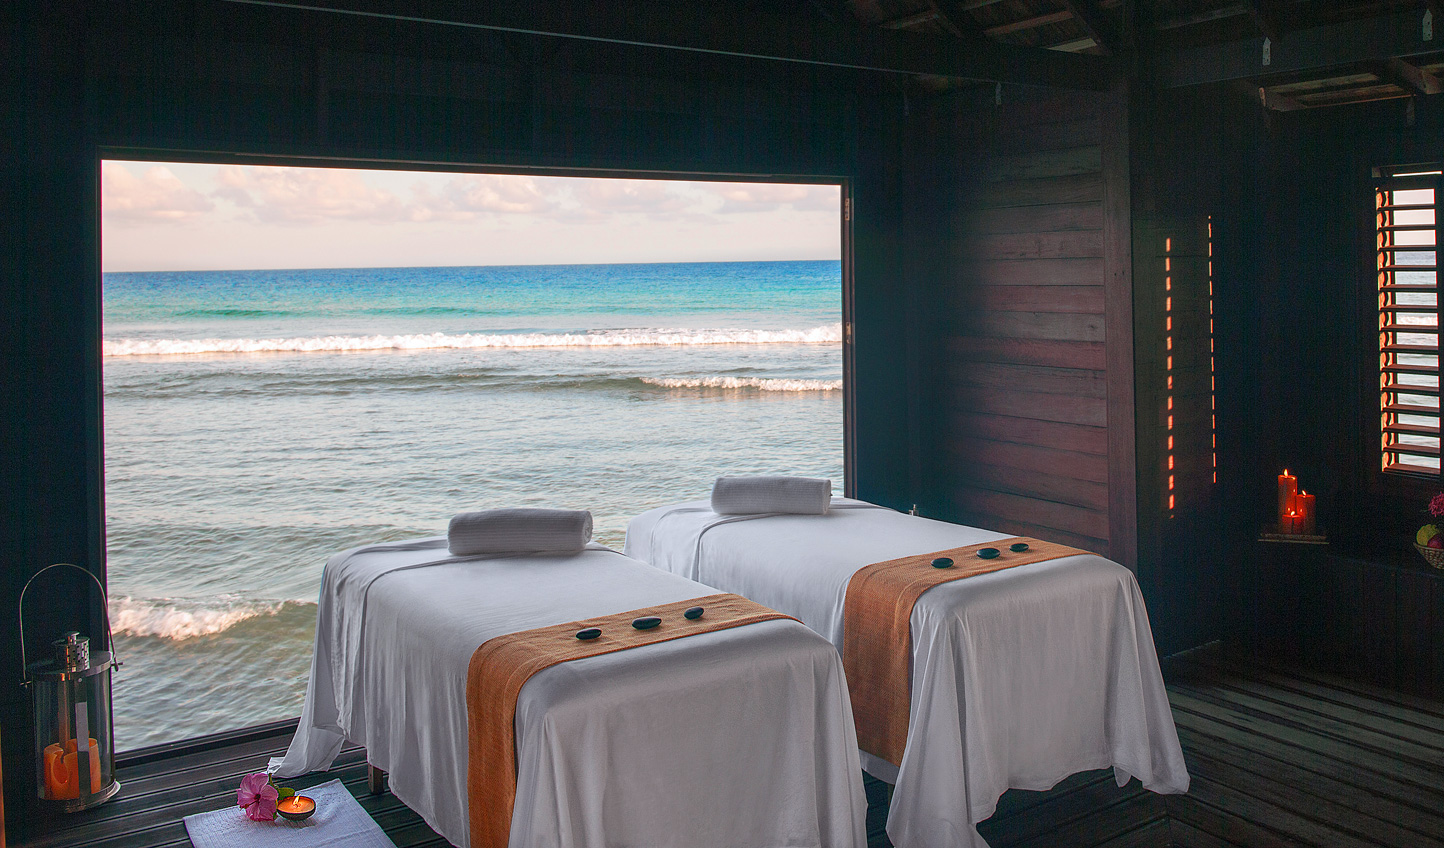 Indulge in a soothing massage with a soundtrack of lapping waves